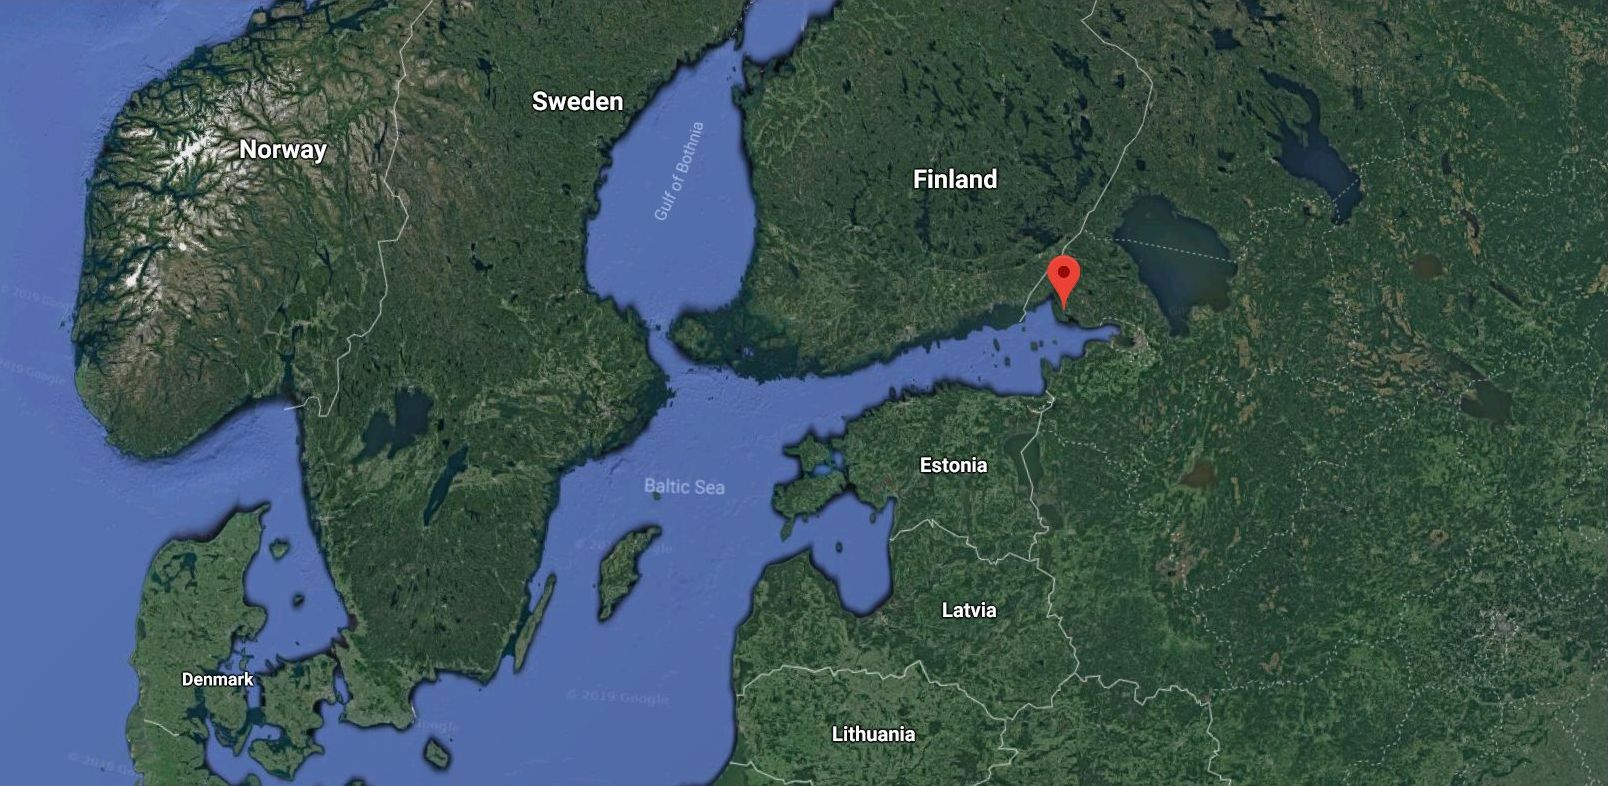 Russia's to have a new seaport in the Baltic